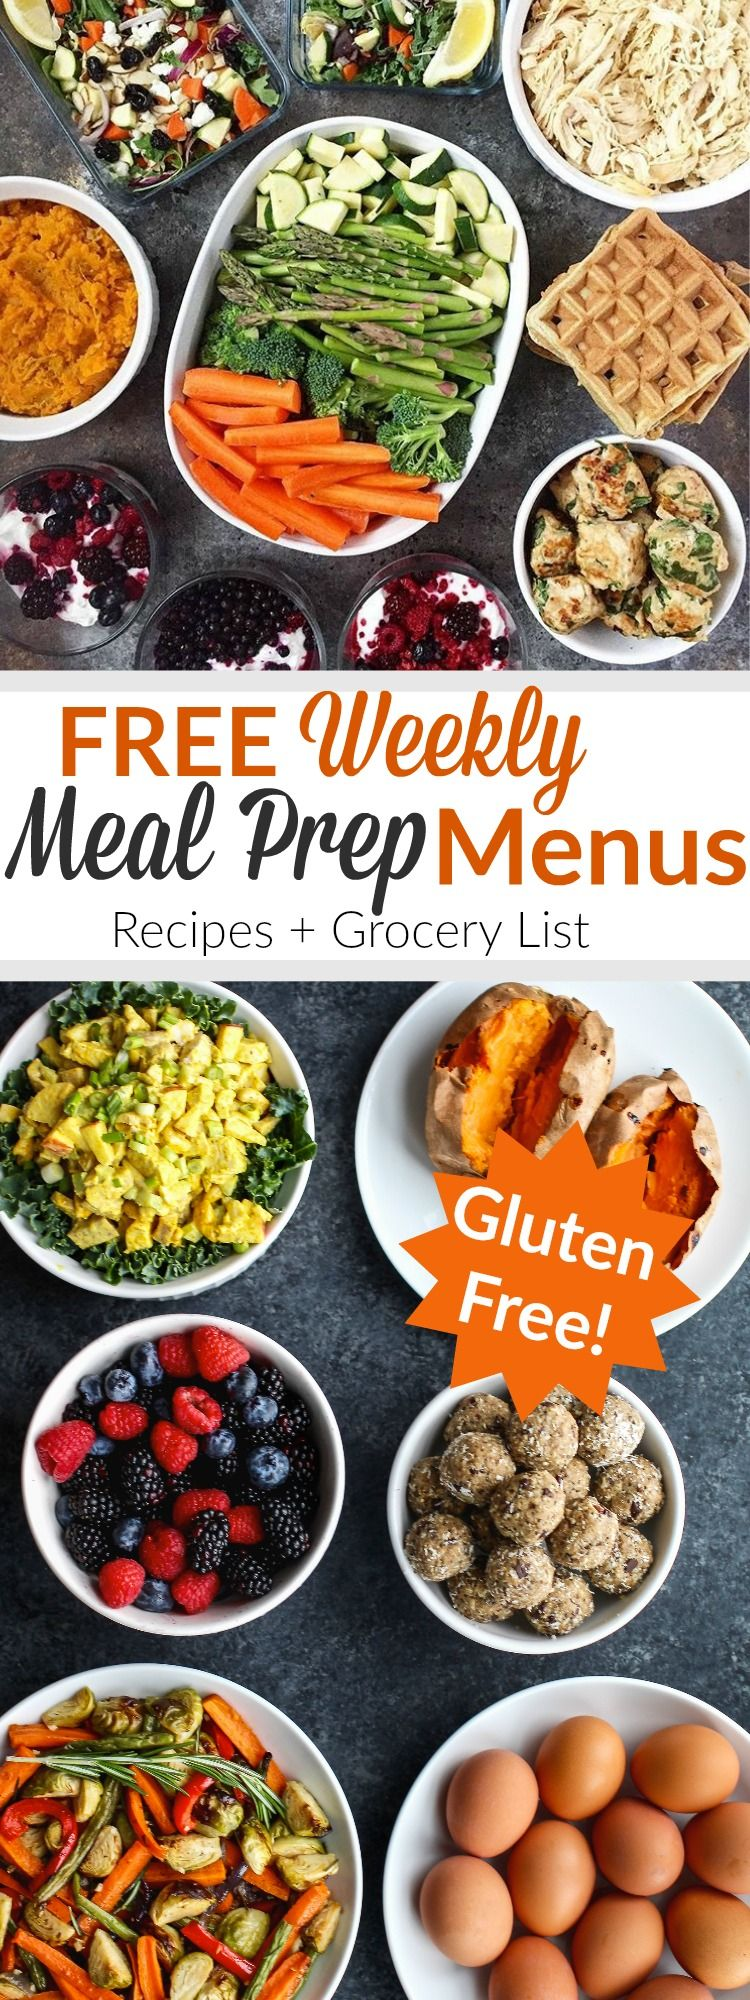 24fa5ec2d78 Easy FREE weekly meal prep menus including recipes and done-for-you grocery  list